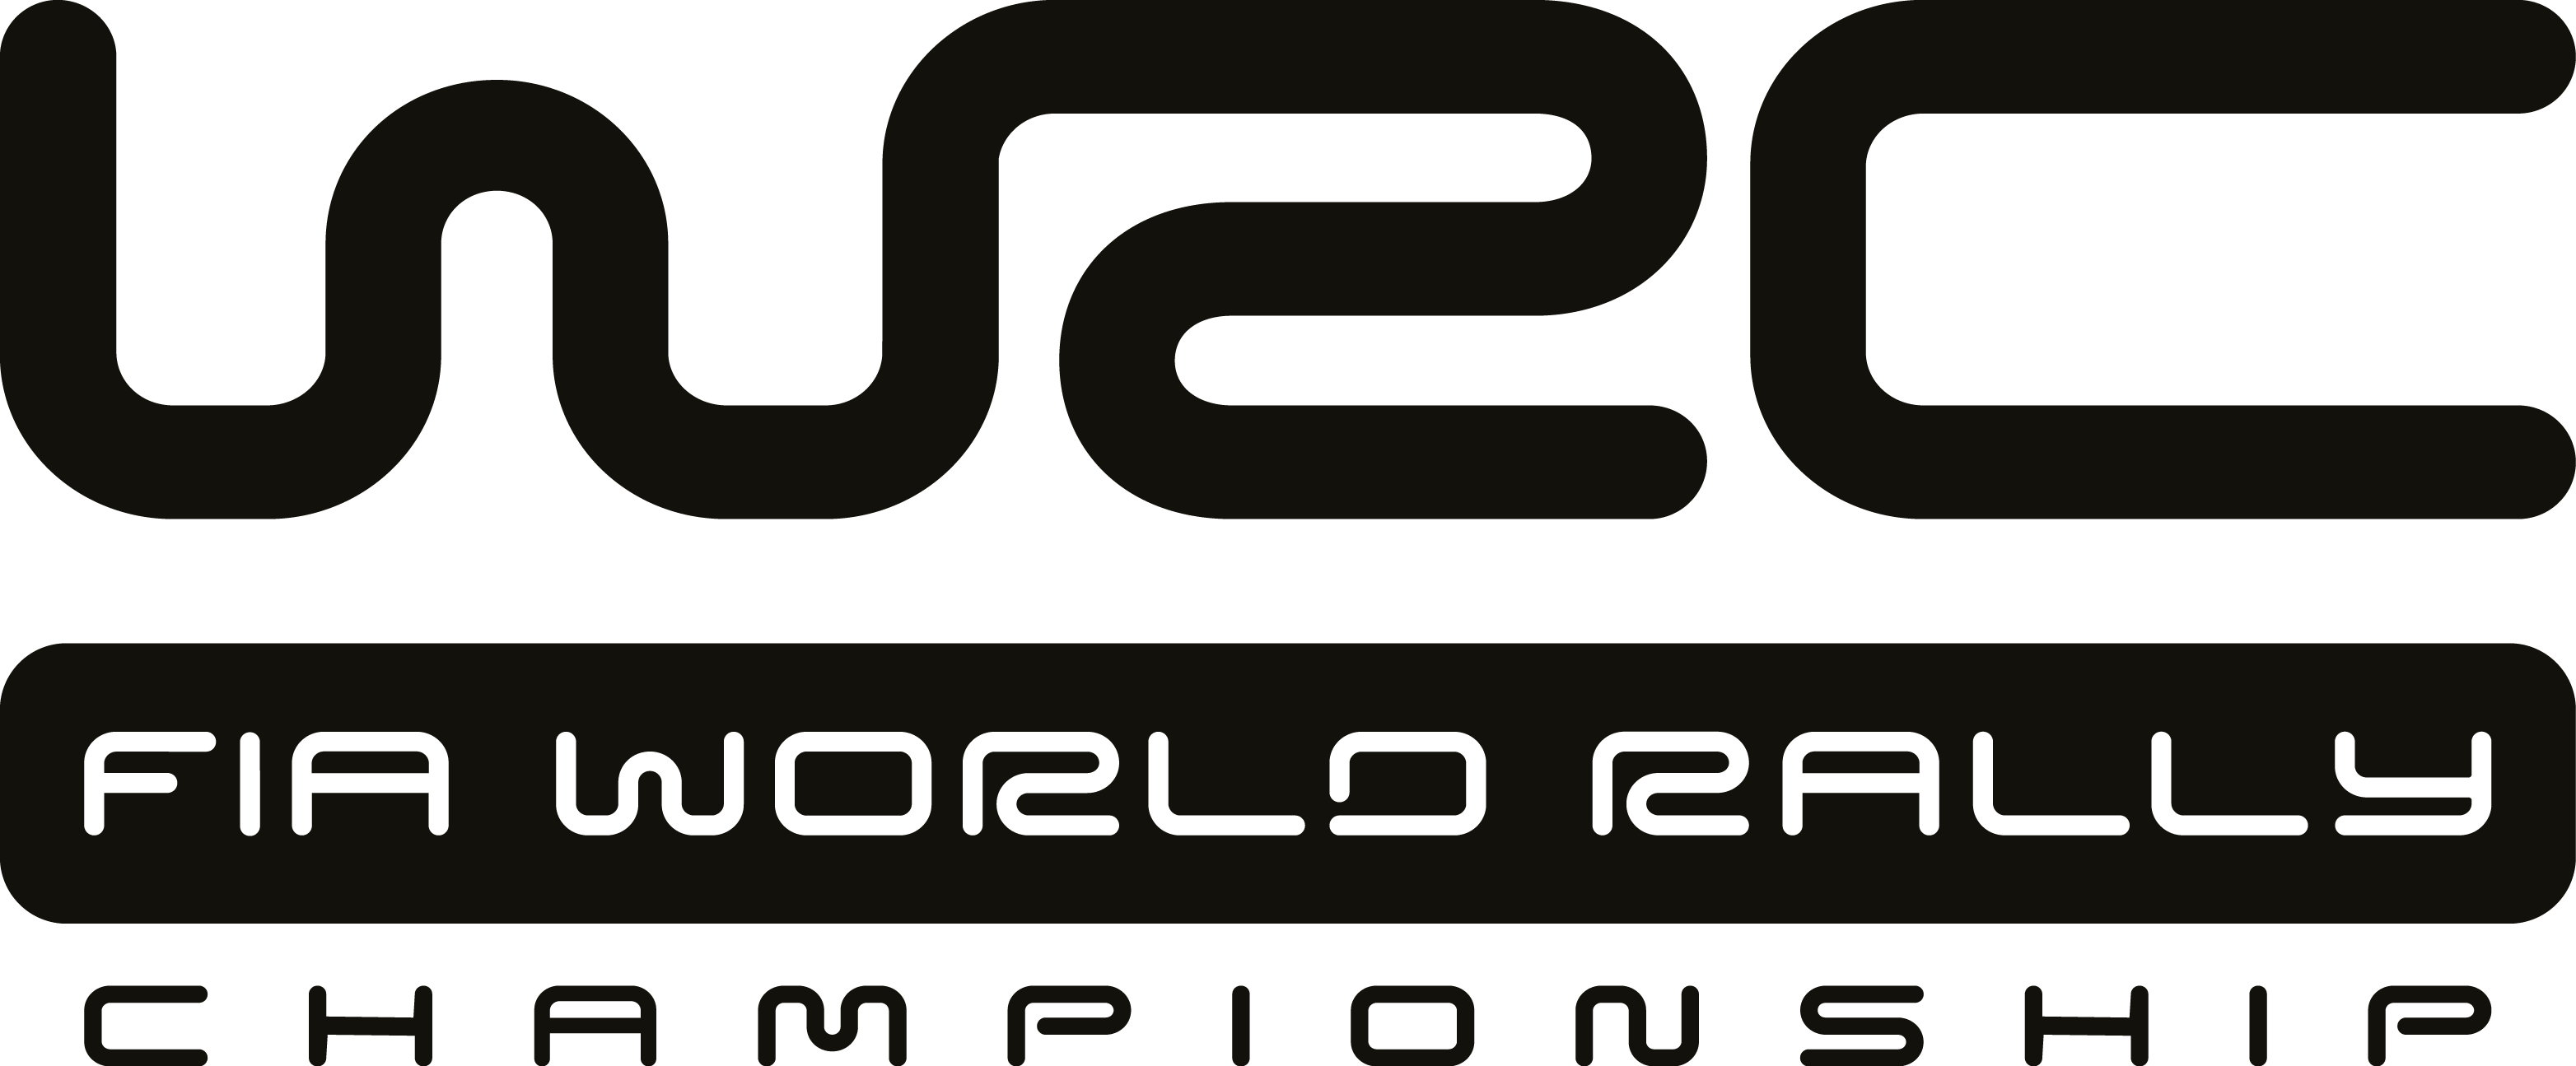 WRC-World-Rally-Championship-logo.png